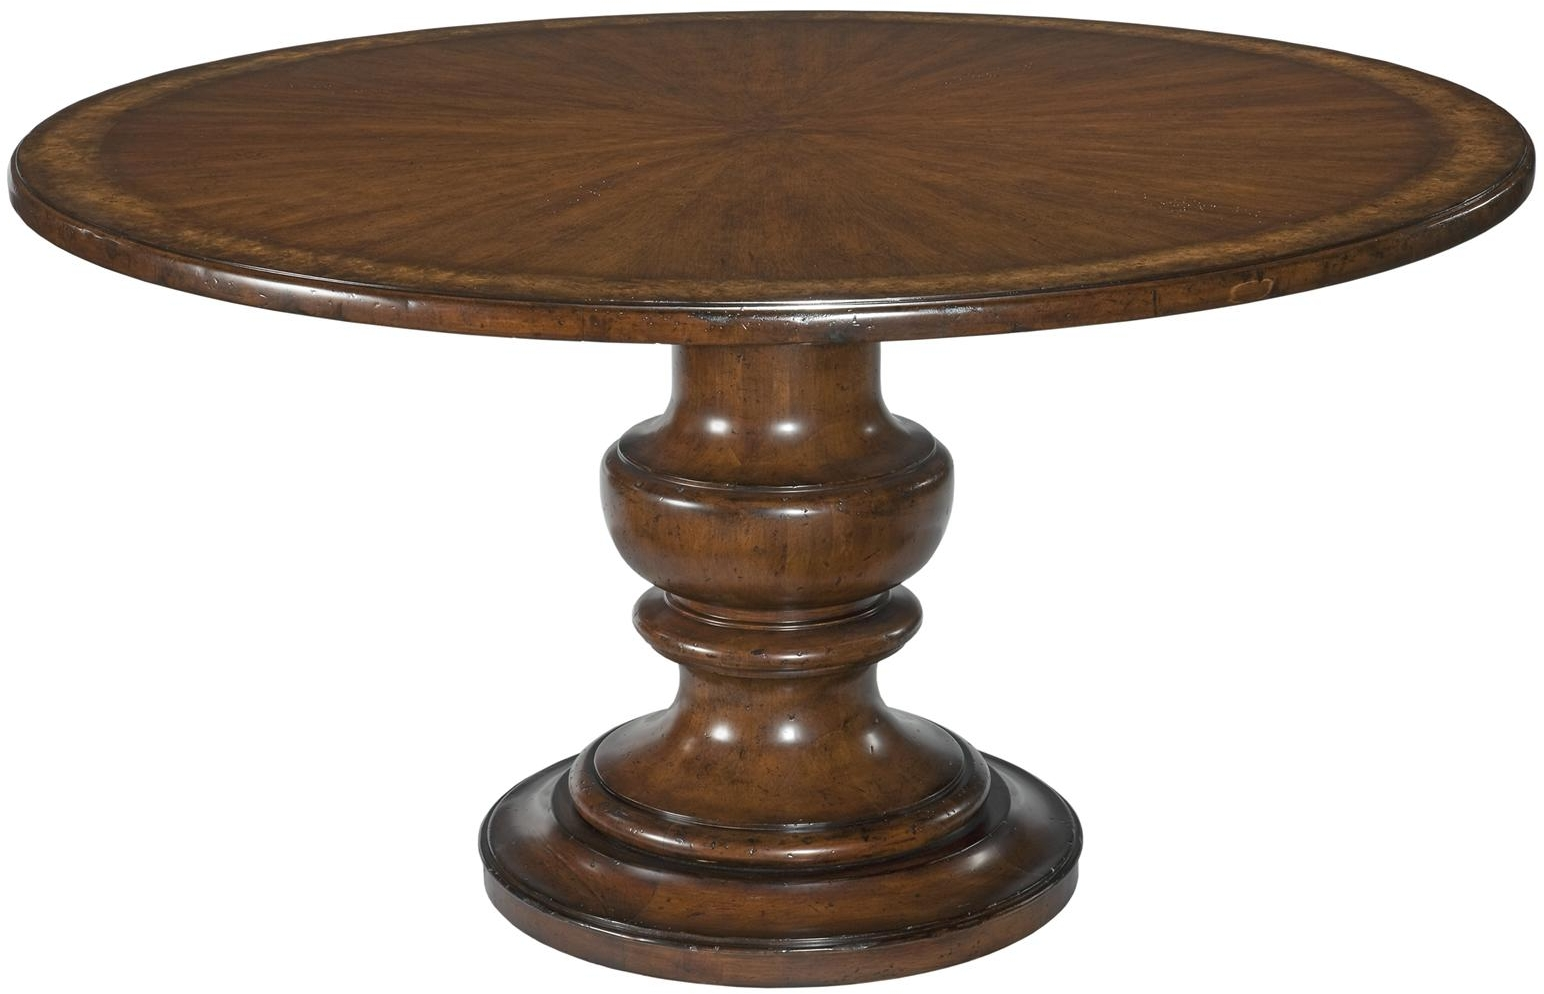 Dining table round pedestal dining table 72 inch for Circular dining table